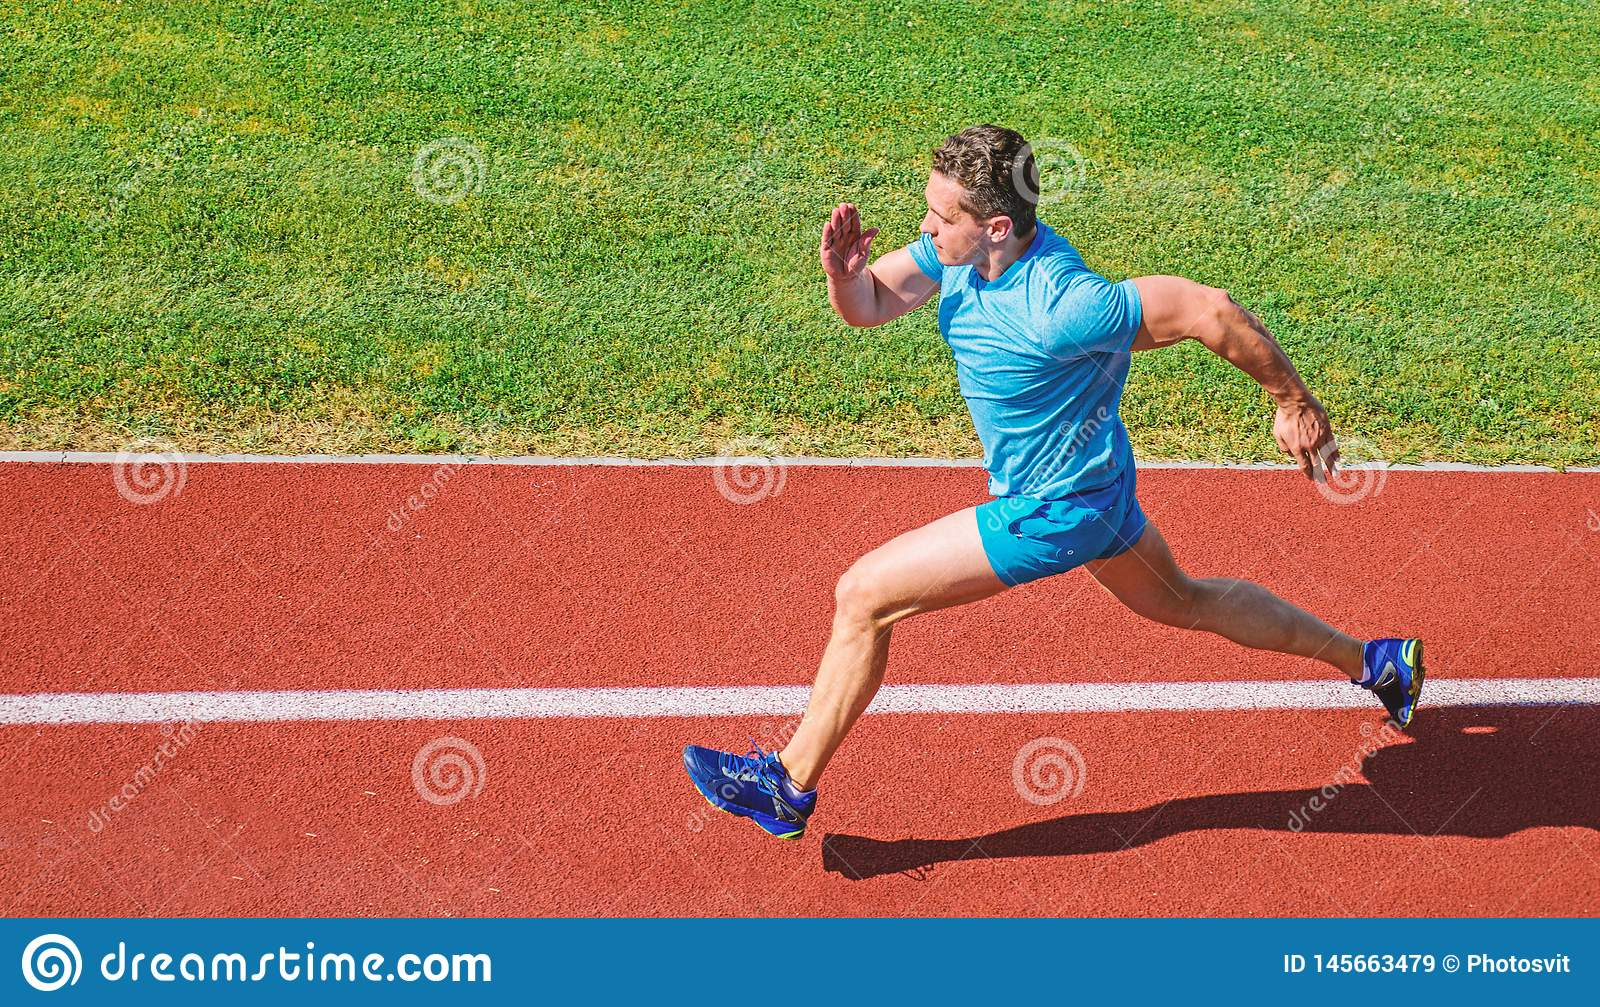 Man athlete run to achieve great result. How run faster. Speed training guide. List ways to improve running speed